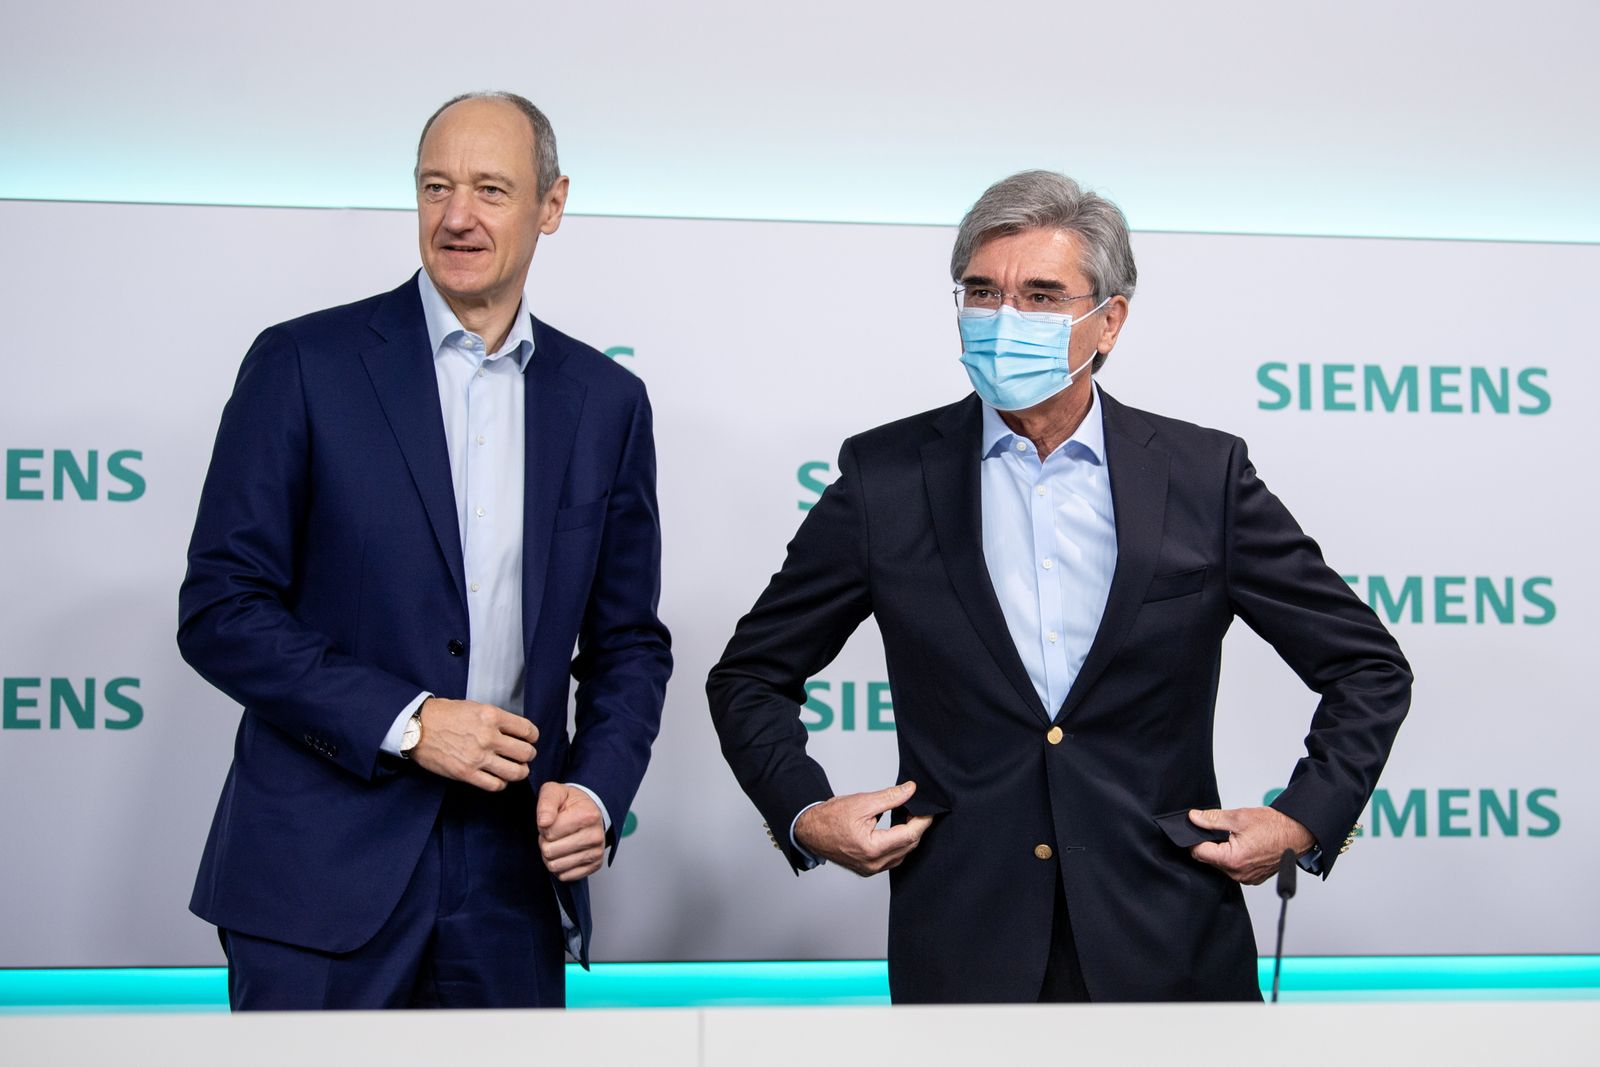 German engineering company Siemens releases its fiscal Q4 and full-year results